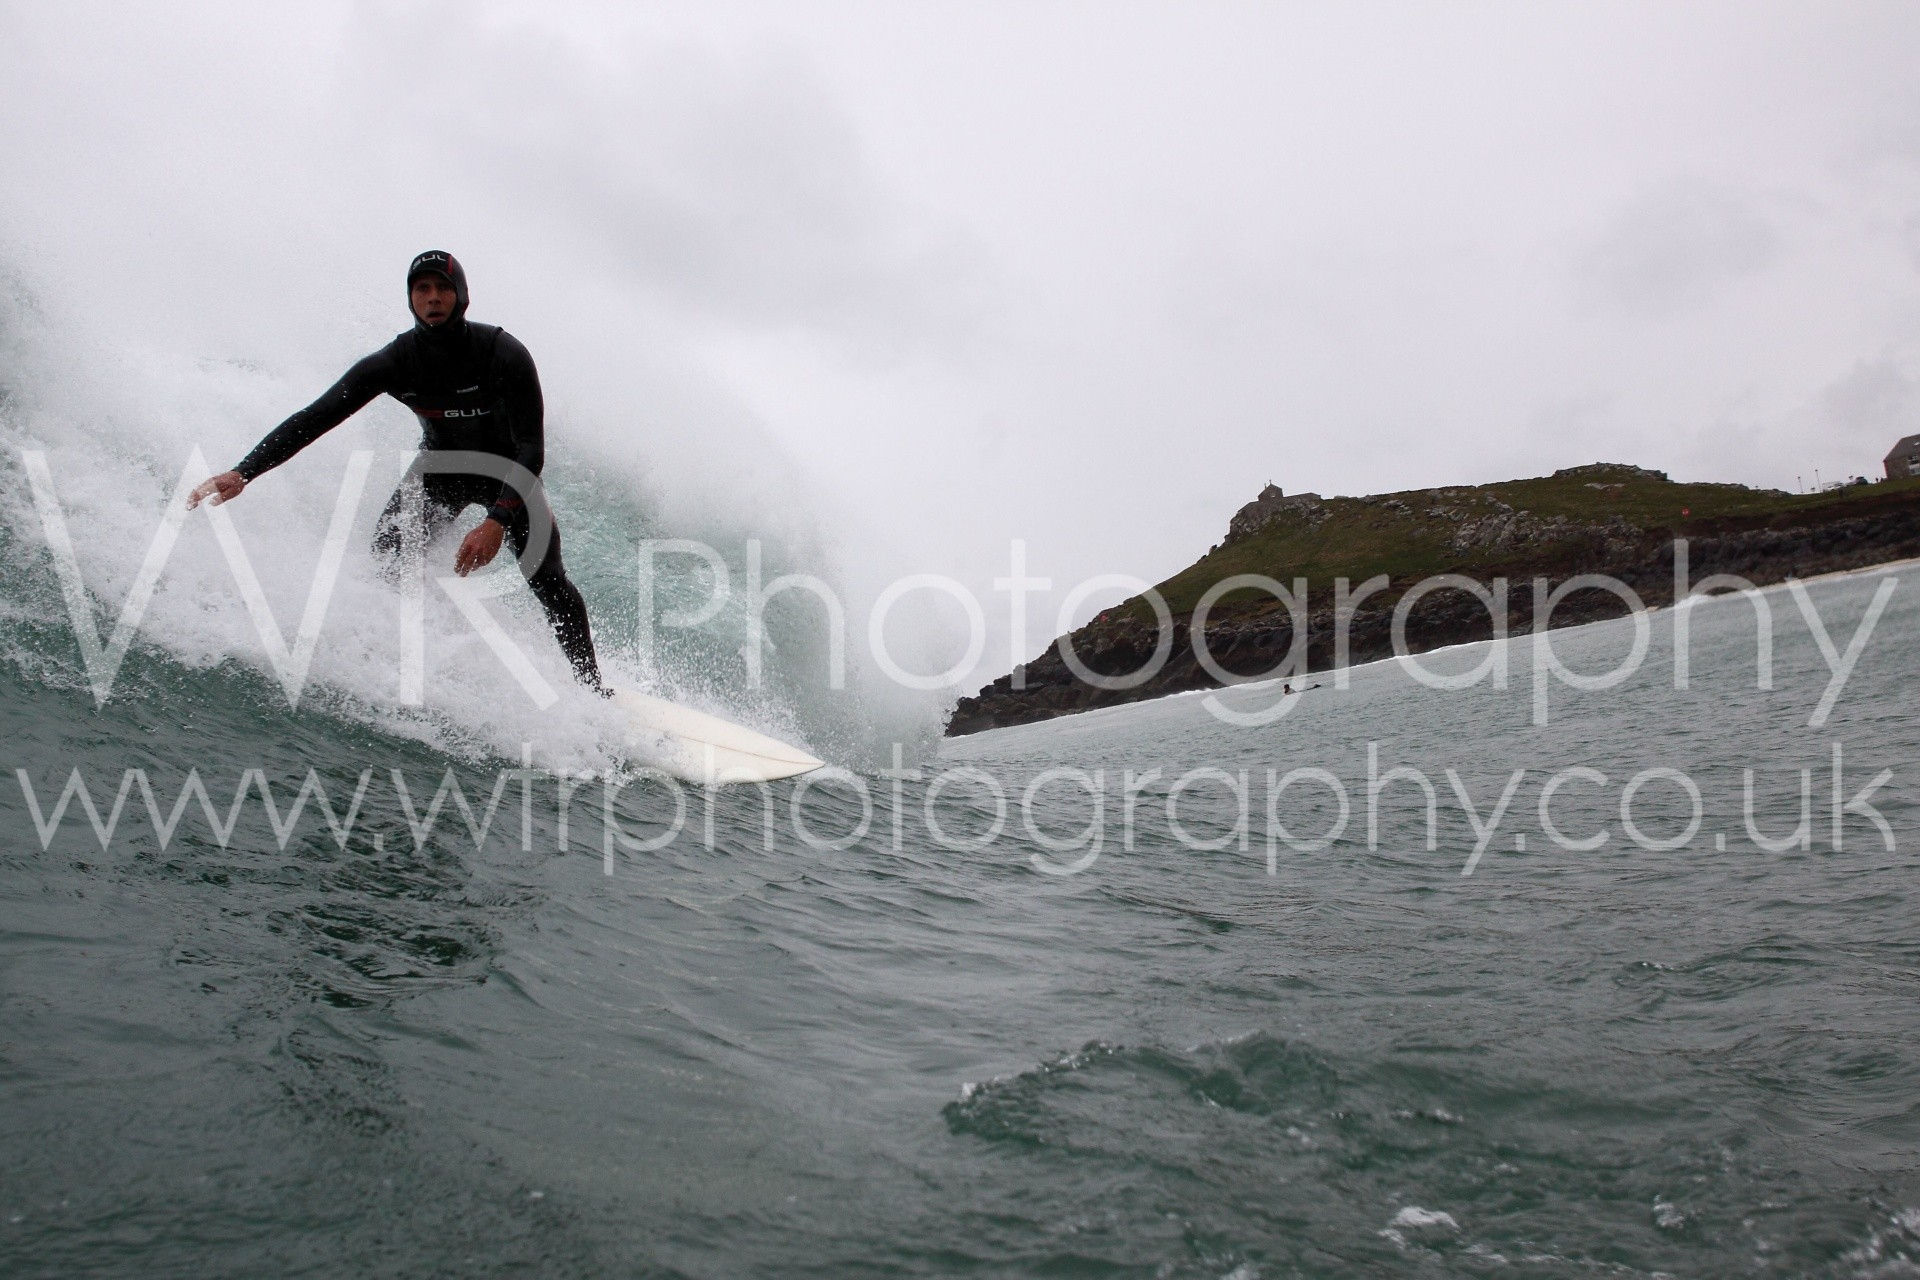 Will Reddaway's photo of Porthmeor